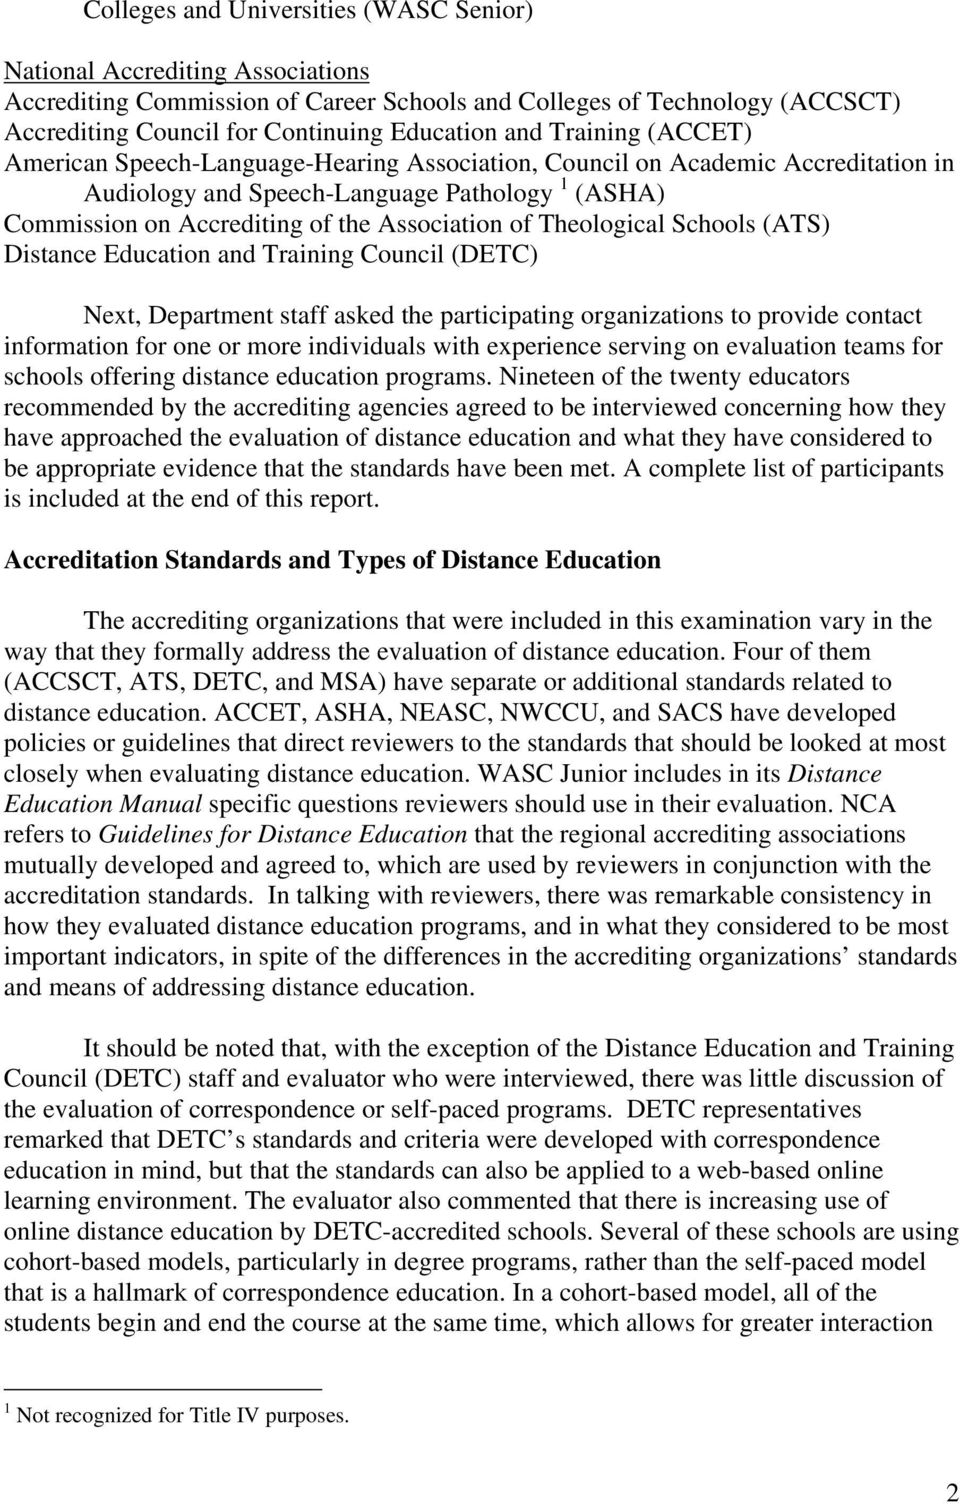 Theological Schools (ATS) Distance Education and Training Council (DETC) Next, Department staff asked the participating organizations to provide contact information for one or more individuals with